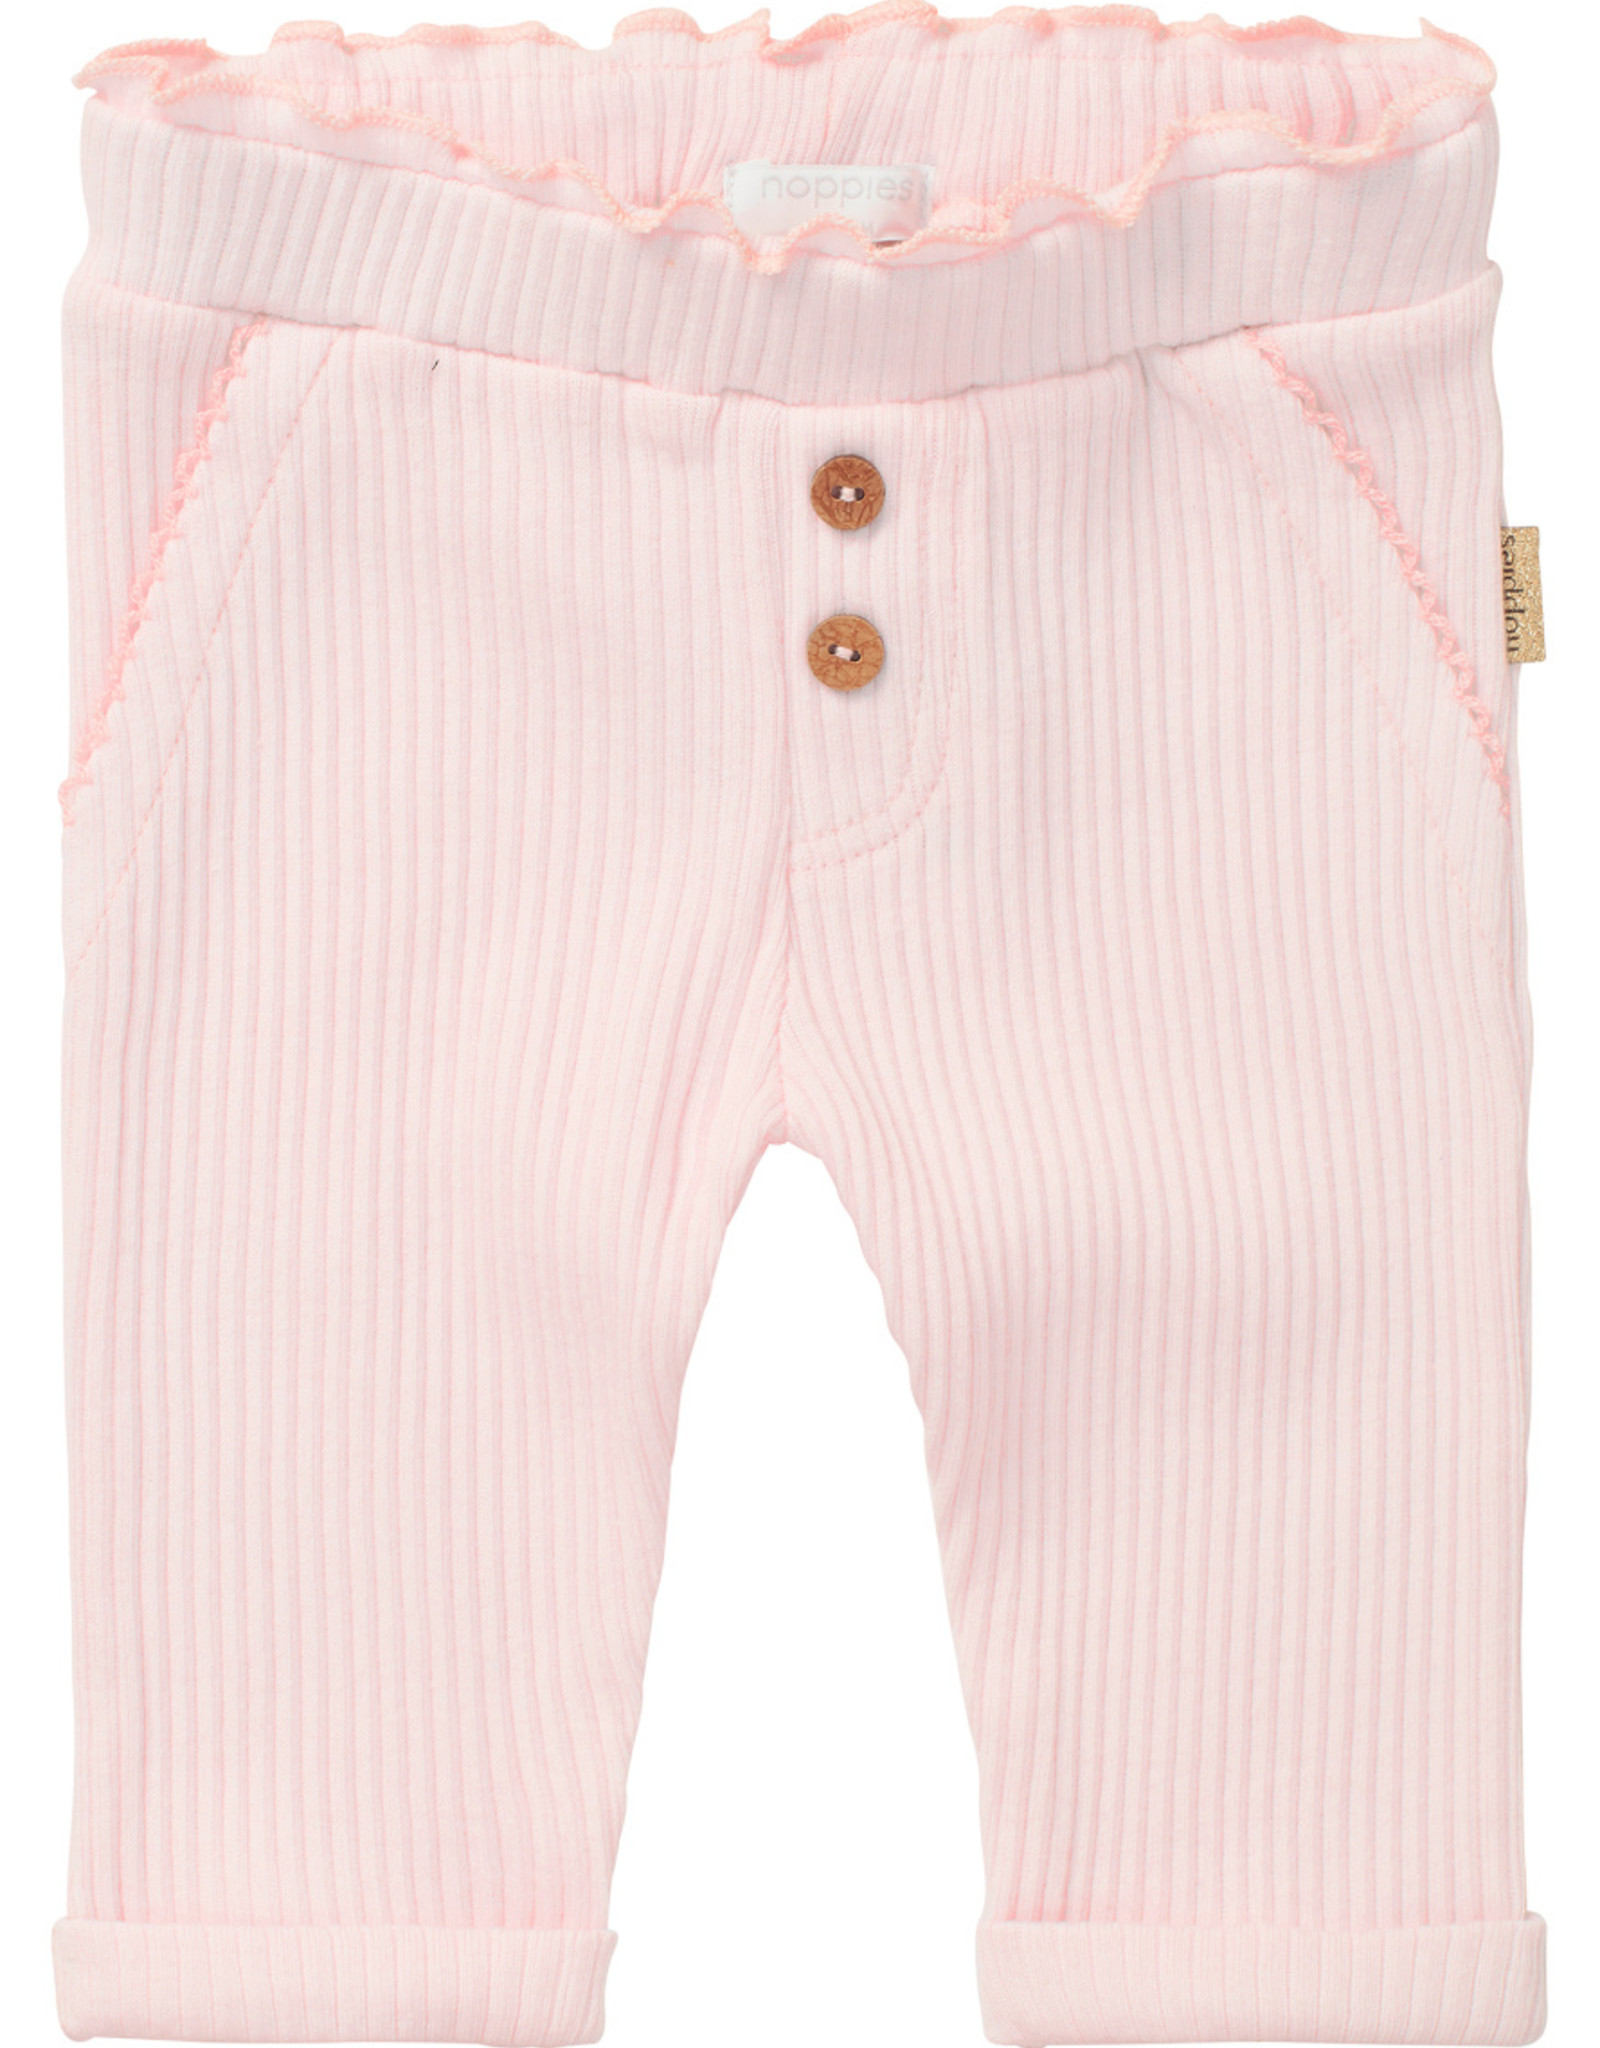 Noppies SP21 BbyG Pink Mascouche Pant